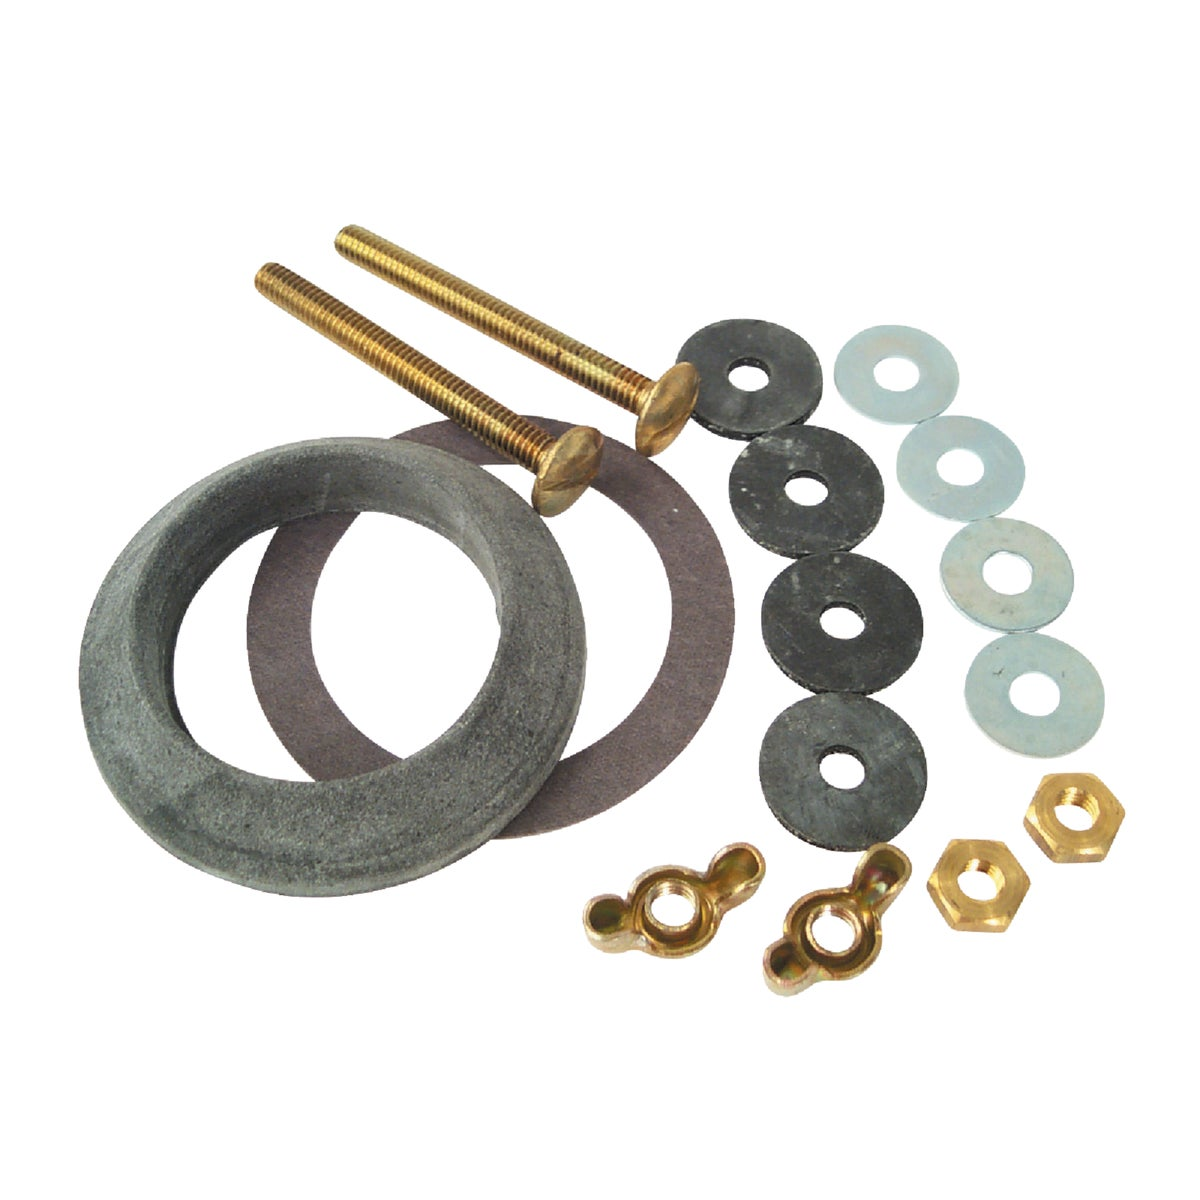 BOLT & WASHER KIT - 408492 by Do it Best